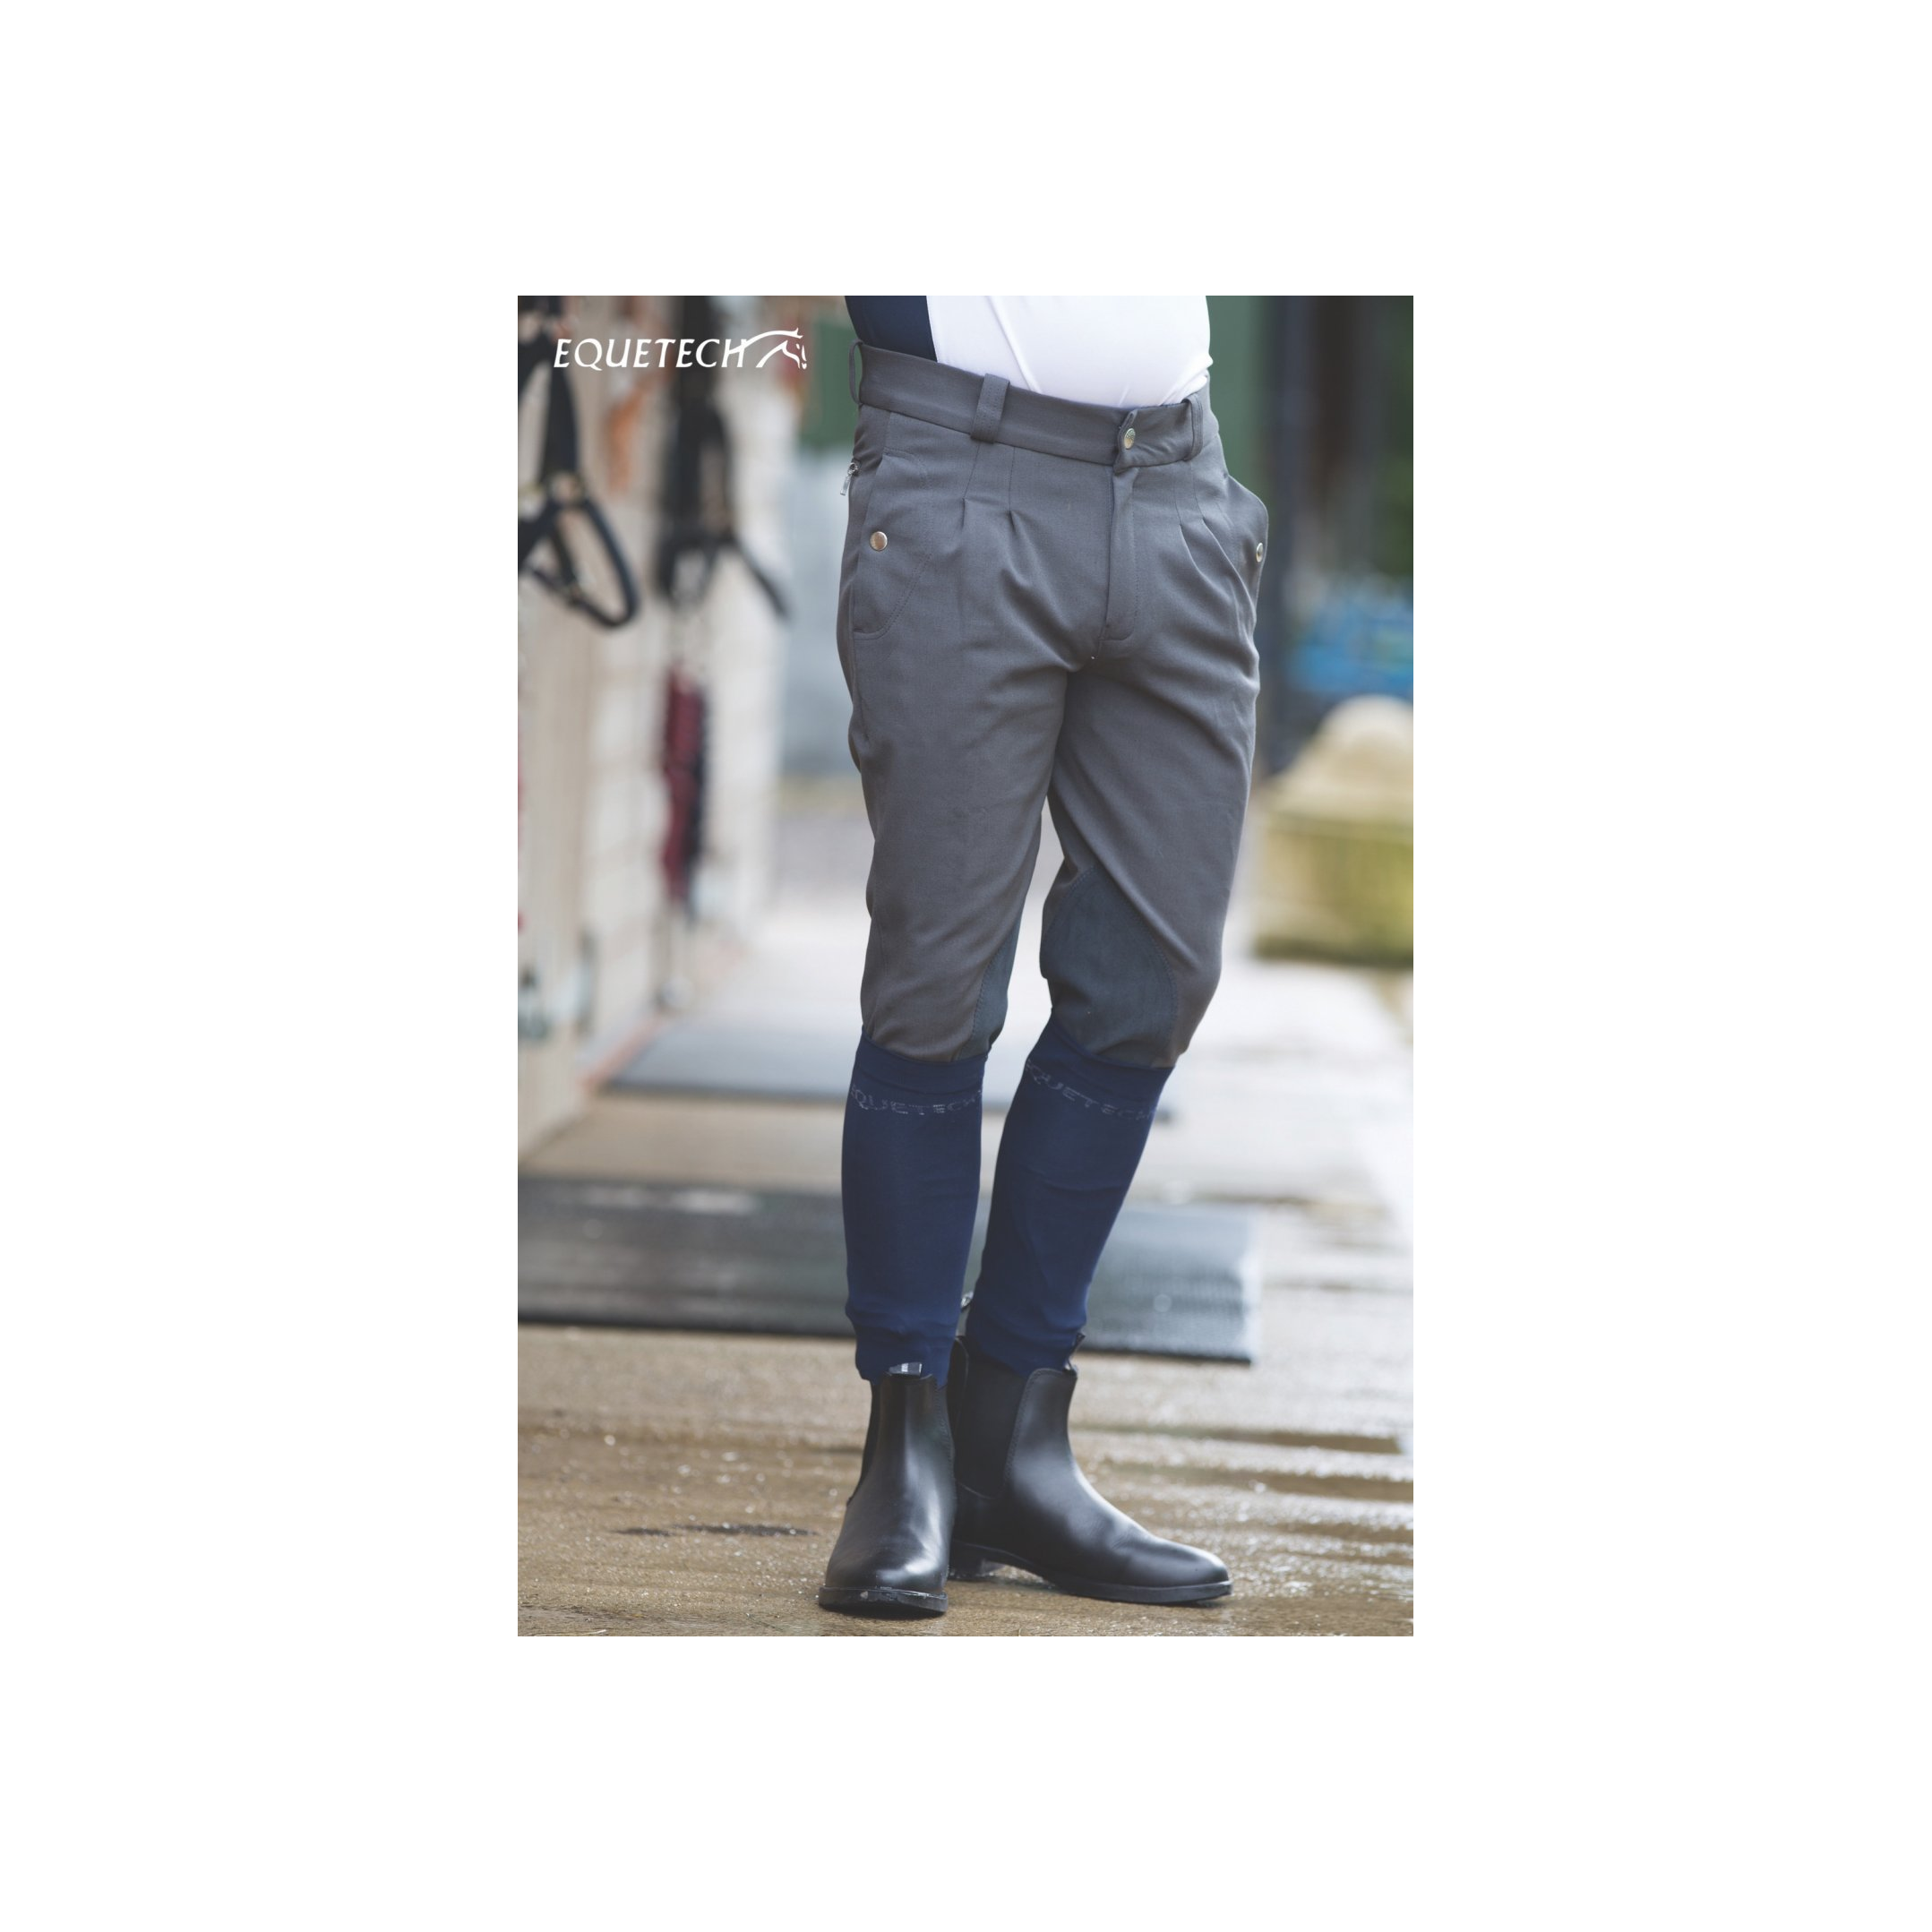 Equetech Mens Kingham Breeches  - Thomas Irving's equestrian and accessories store  Equetech Mens Kingham Breeches